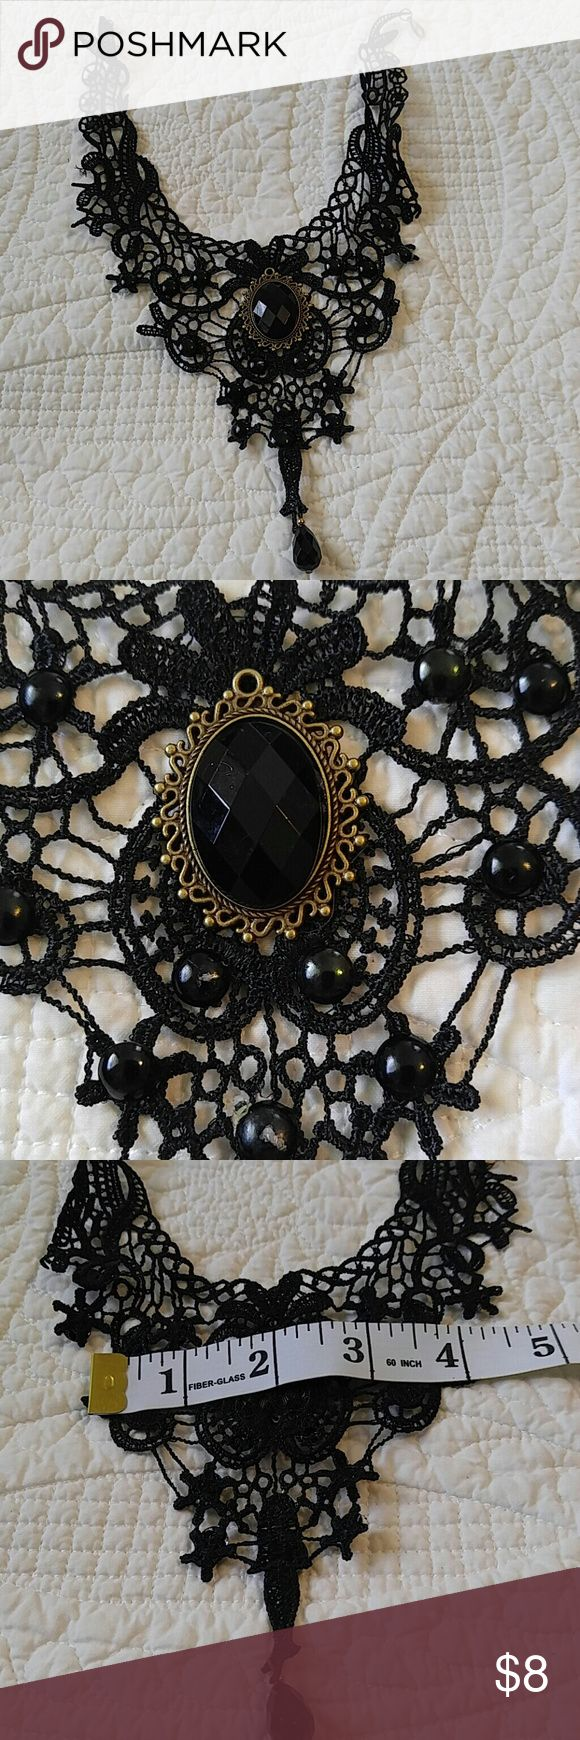 NEW Goth romantic black crochet lace choker prom Delicate Romatic vintage inspired.  NEW never worn.  Lace.  Bead embellishments Jewelry Necklaces